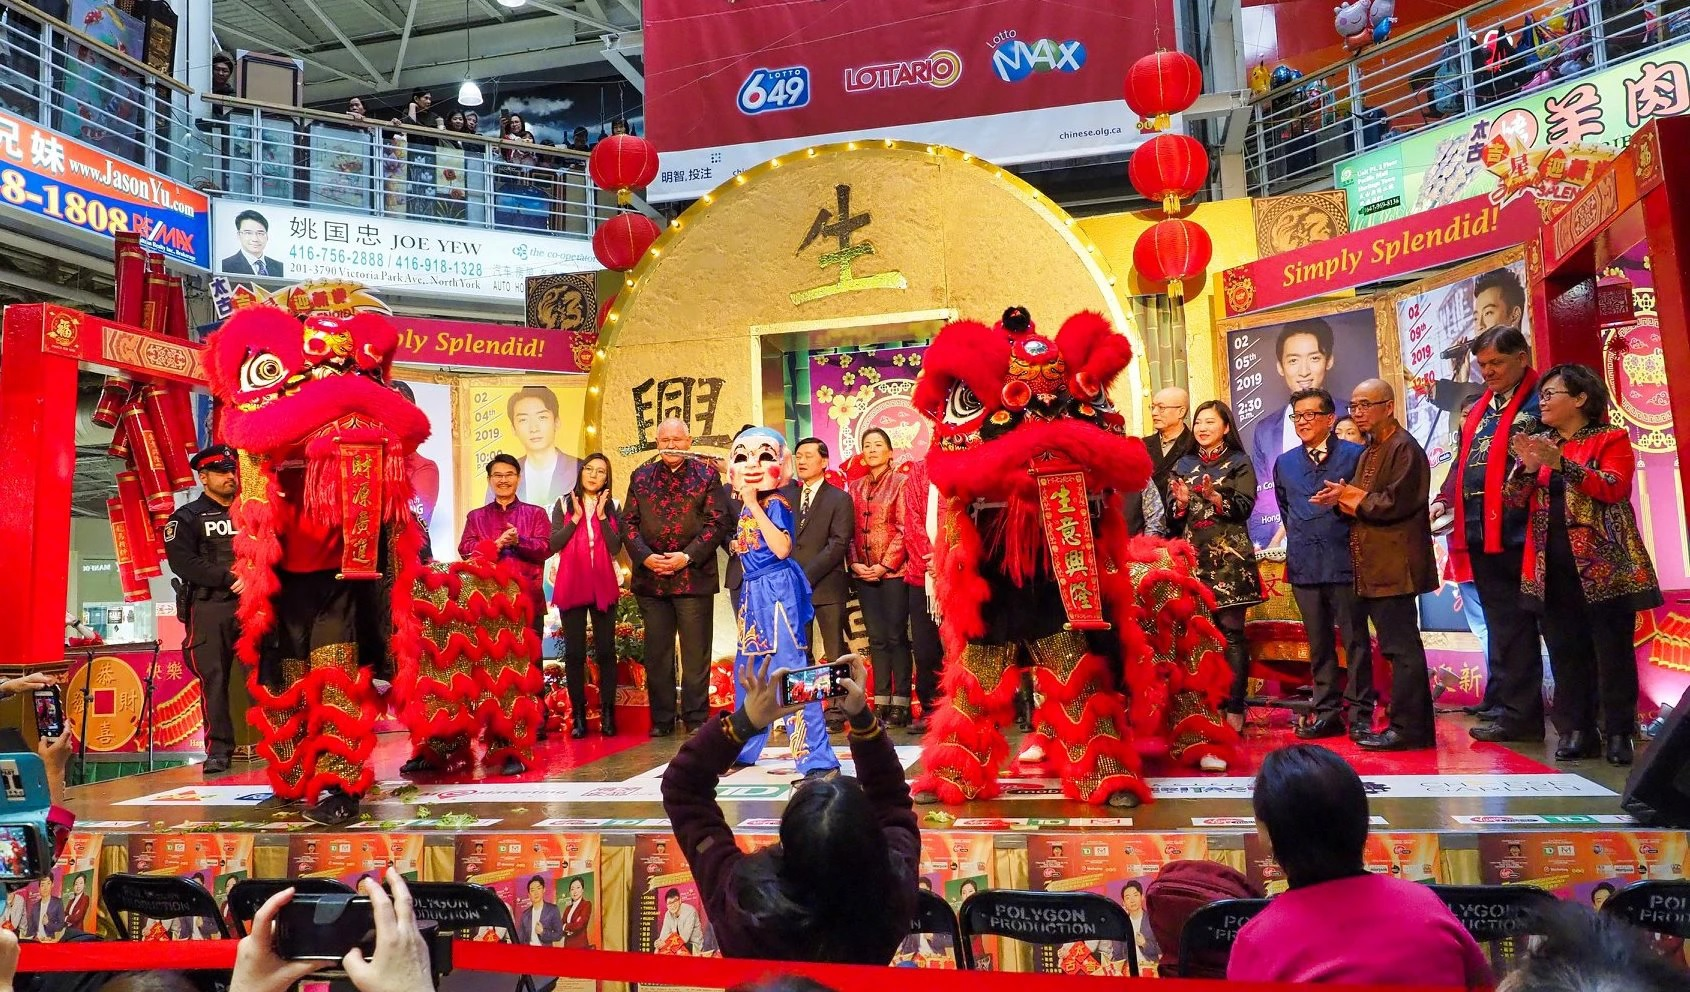 wayland-li-wushu-pacific-mall-chinese-new-year-2019-02.jpg